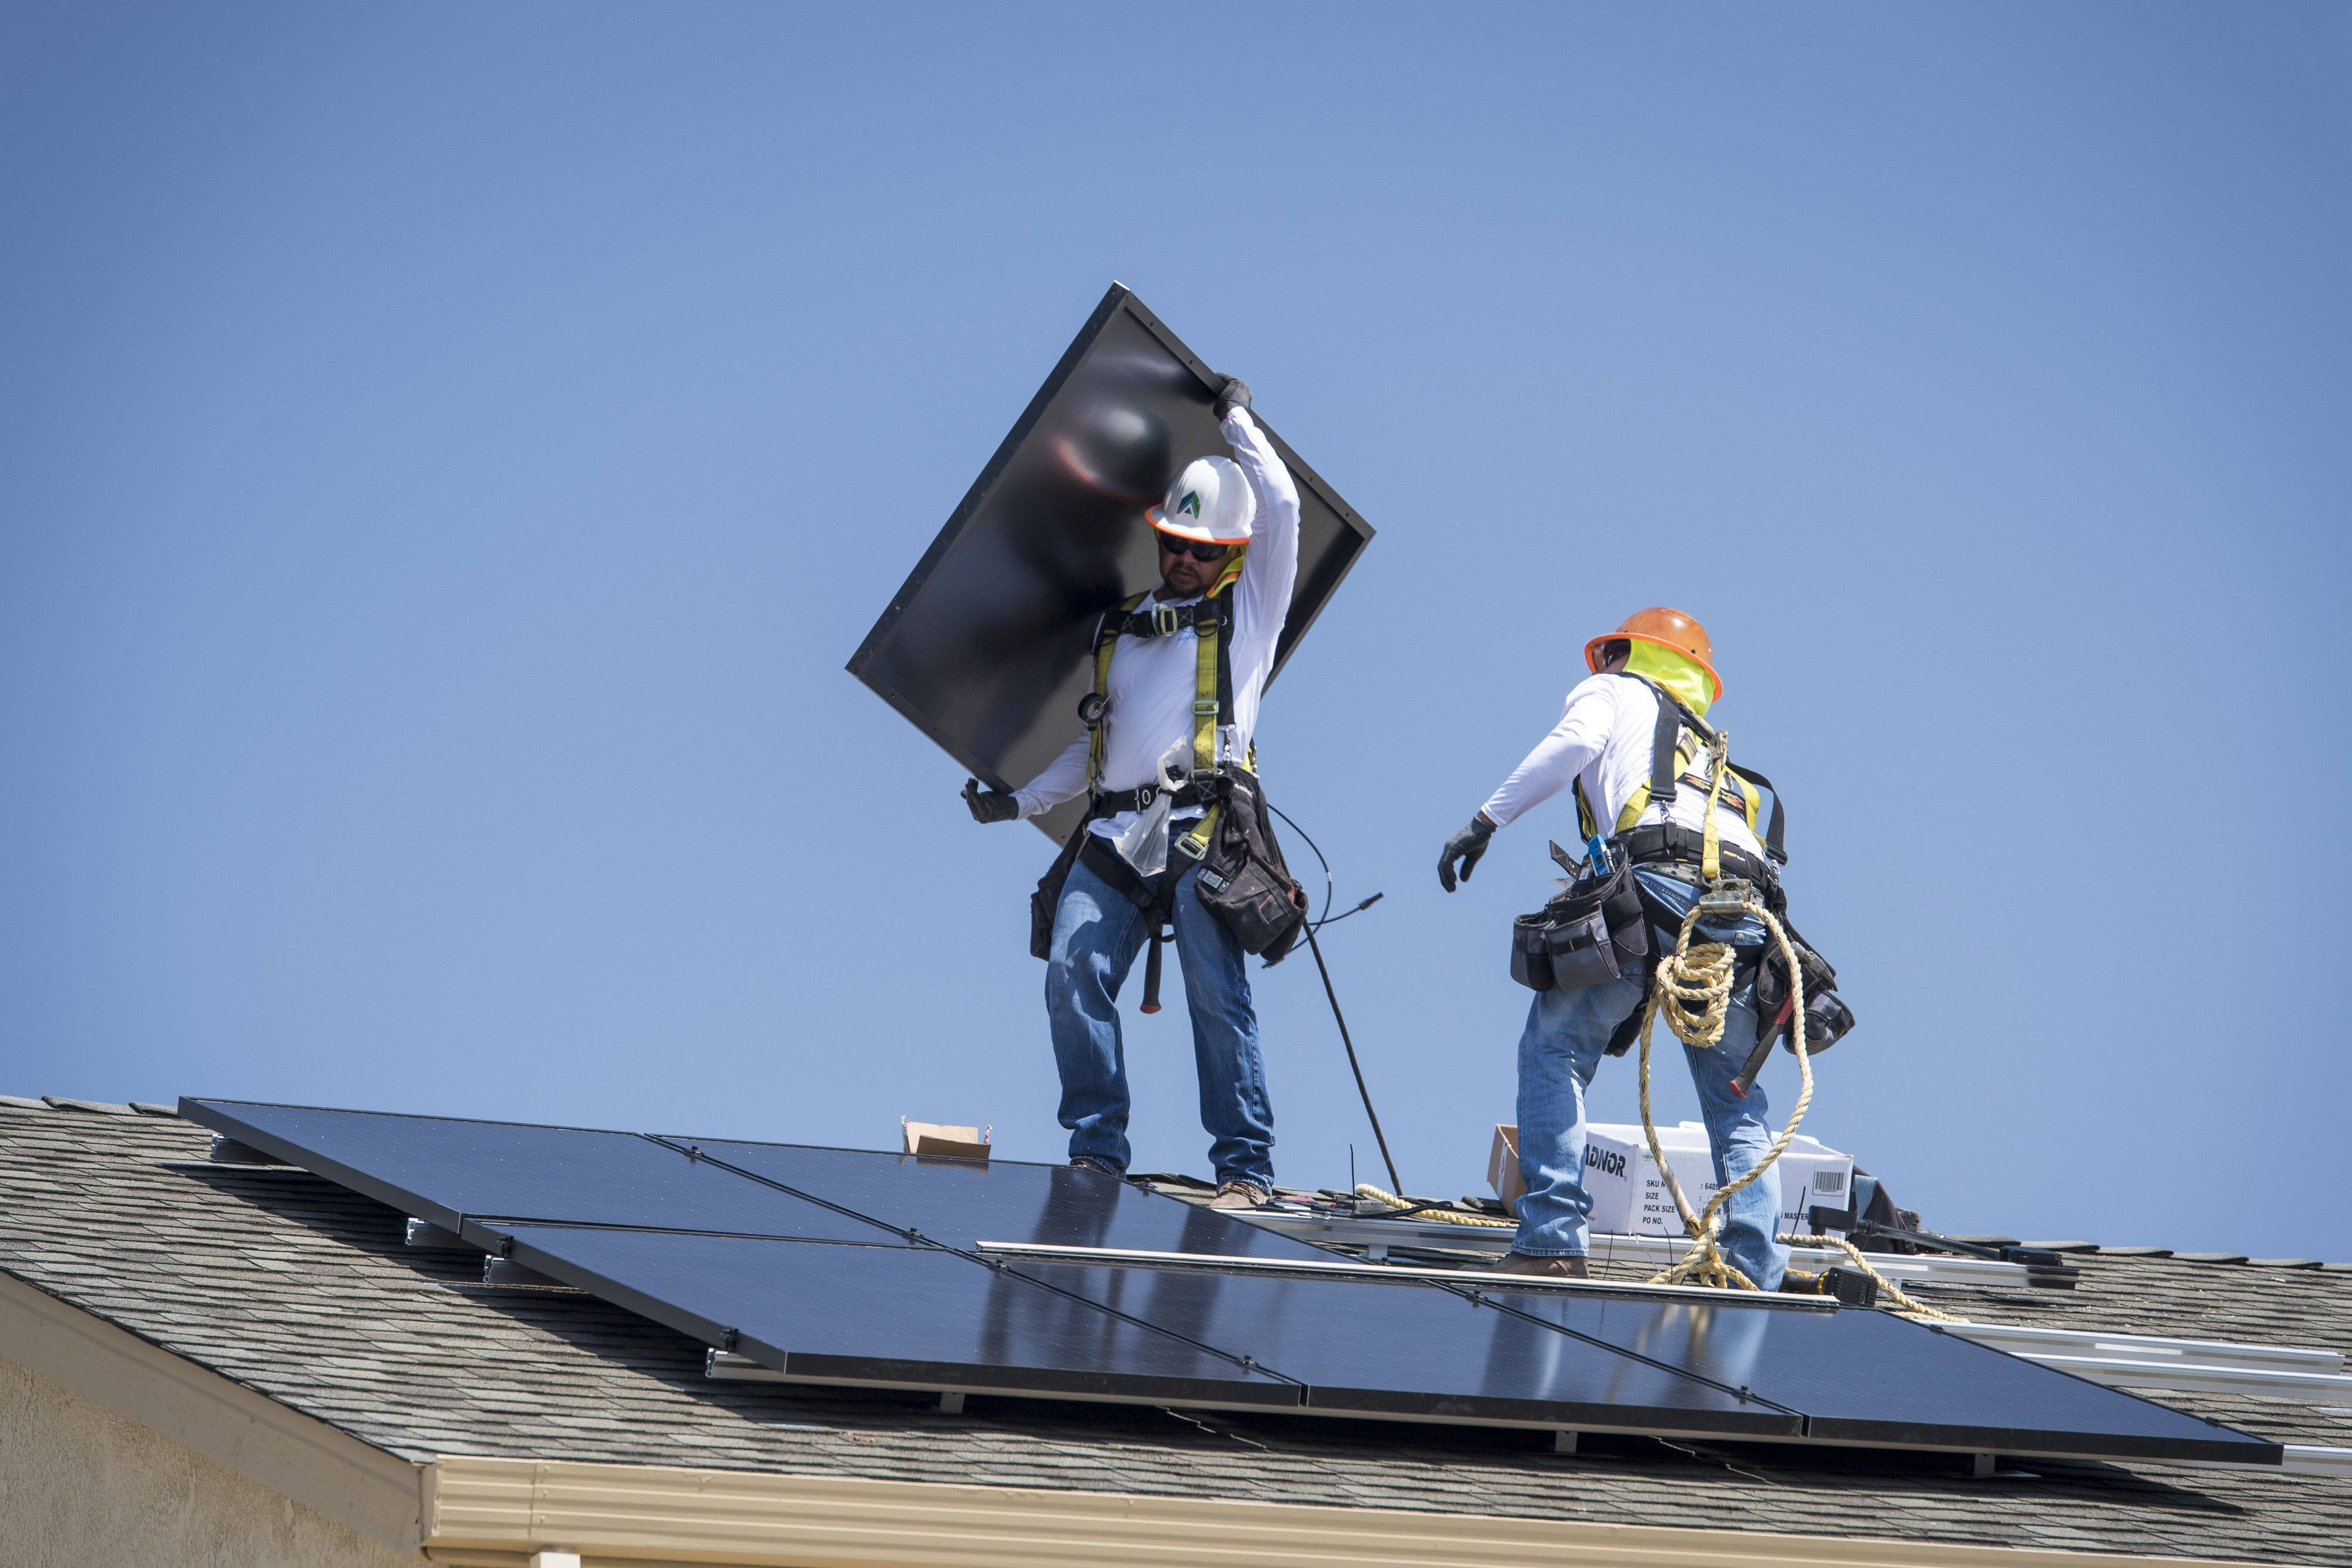 Contractors install SunRun Inc. solar panels on the roof of a new home at the Westline Homes Willowood Cottages community in Sacramento, California, U.S., on Wednesday, Aug. 15, 2018. California is the first state in the U.S. to require solar panels on almost all new homes as part of a mandate to take effect in 2020. Photographer: David Paul Morris/Bloomberg via Getty Images